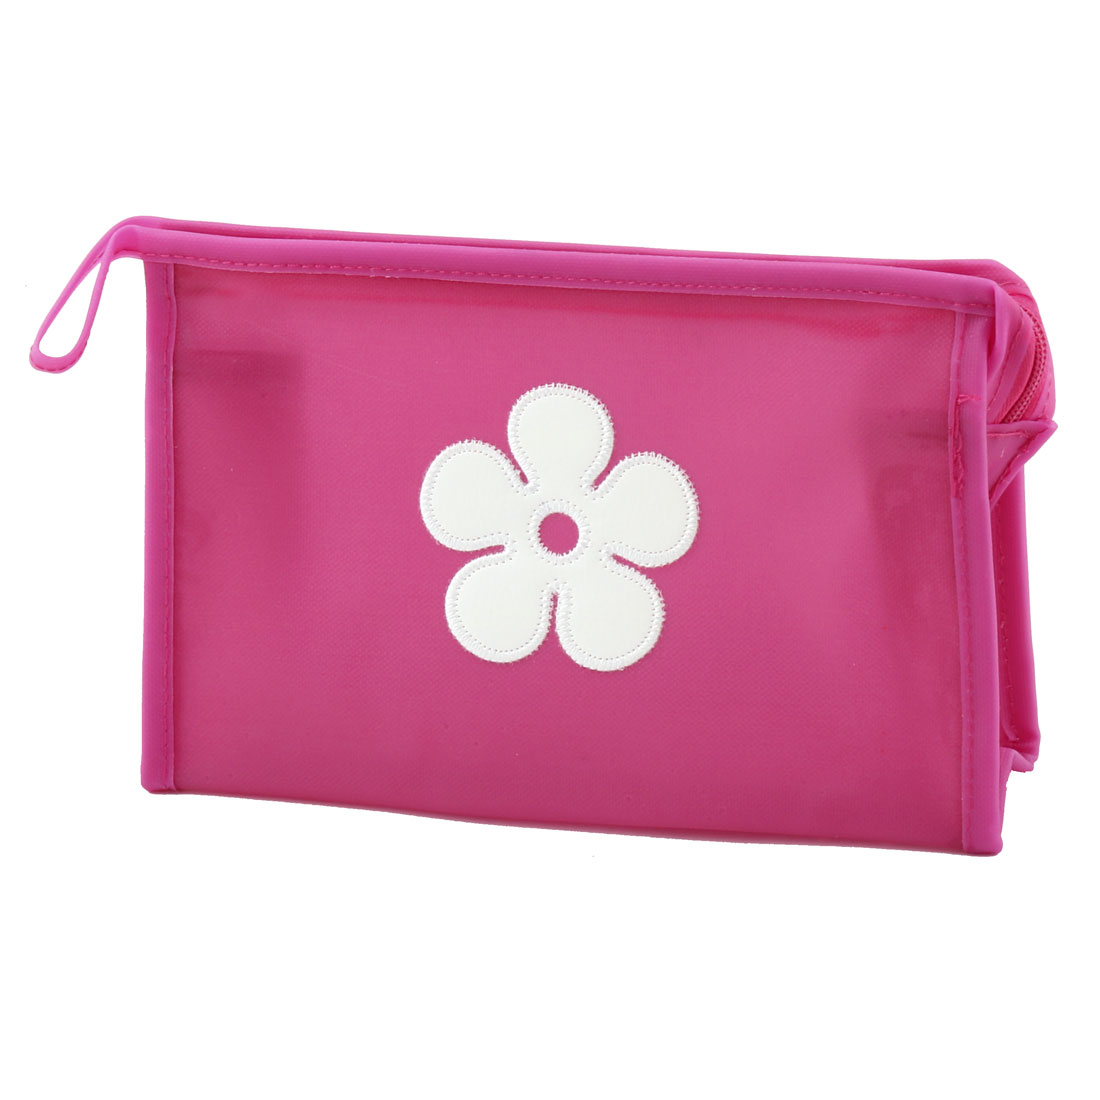 Outdoor Traveling Polyester Flower Pattern Single Layer Cosmetic Container Bag Fuchsia